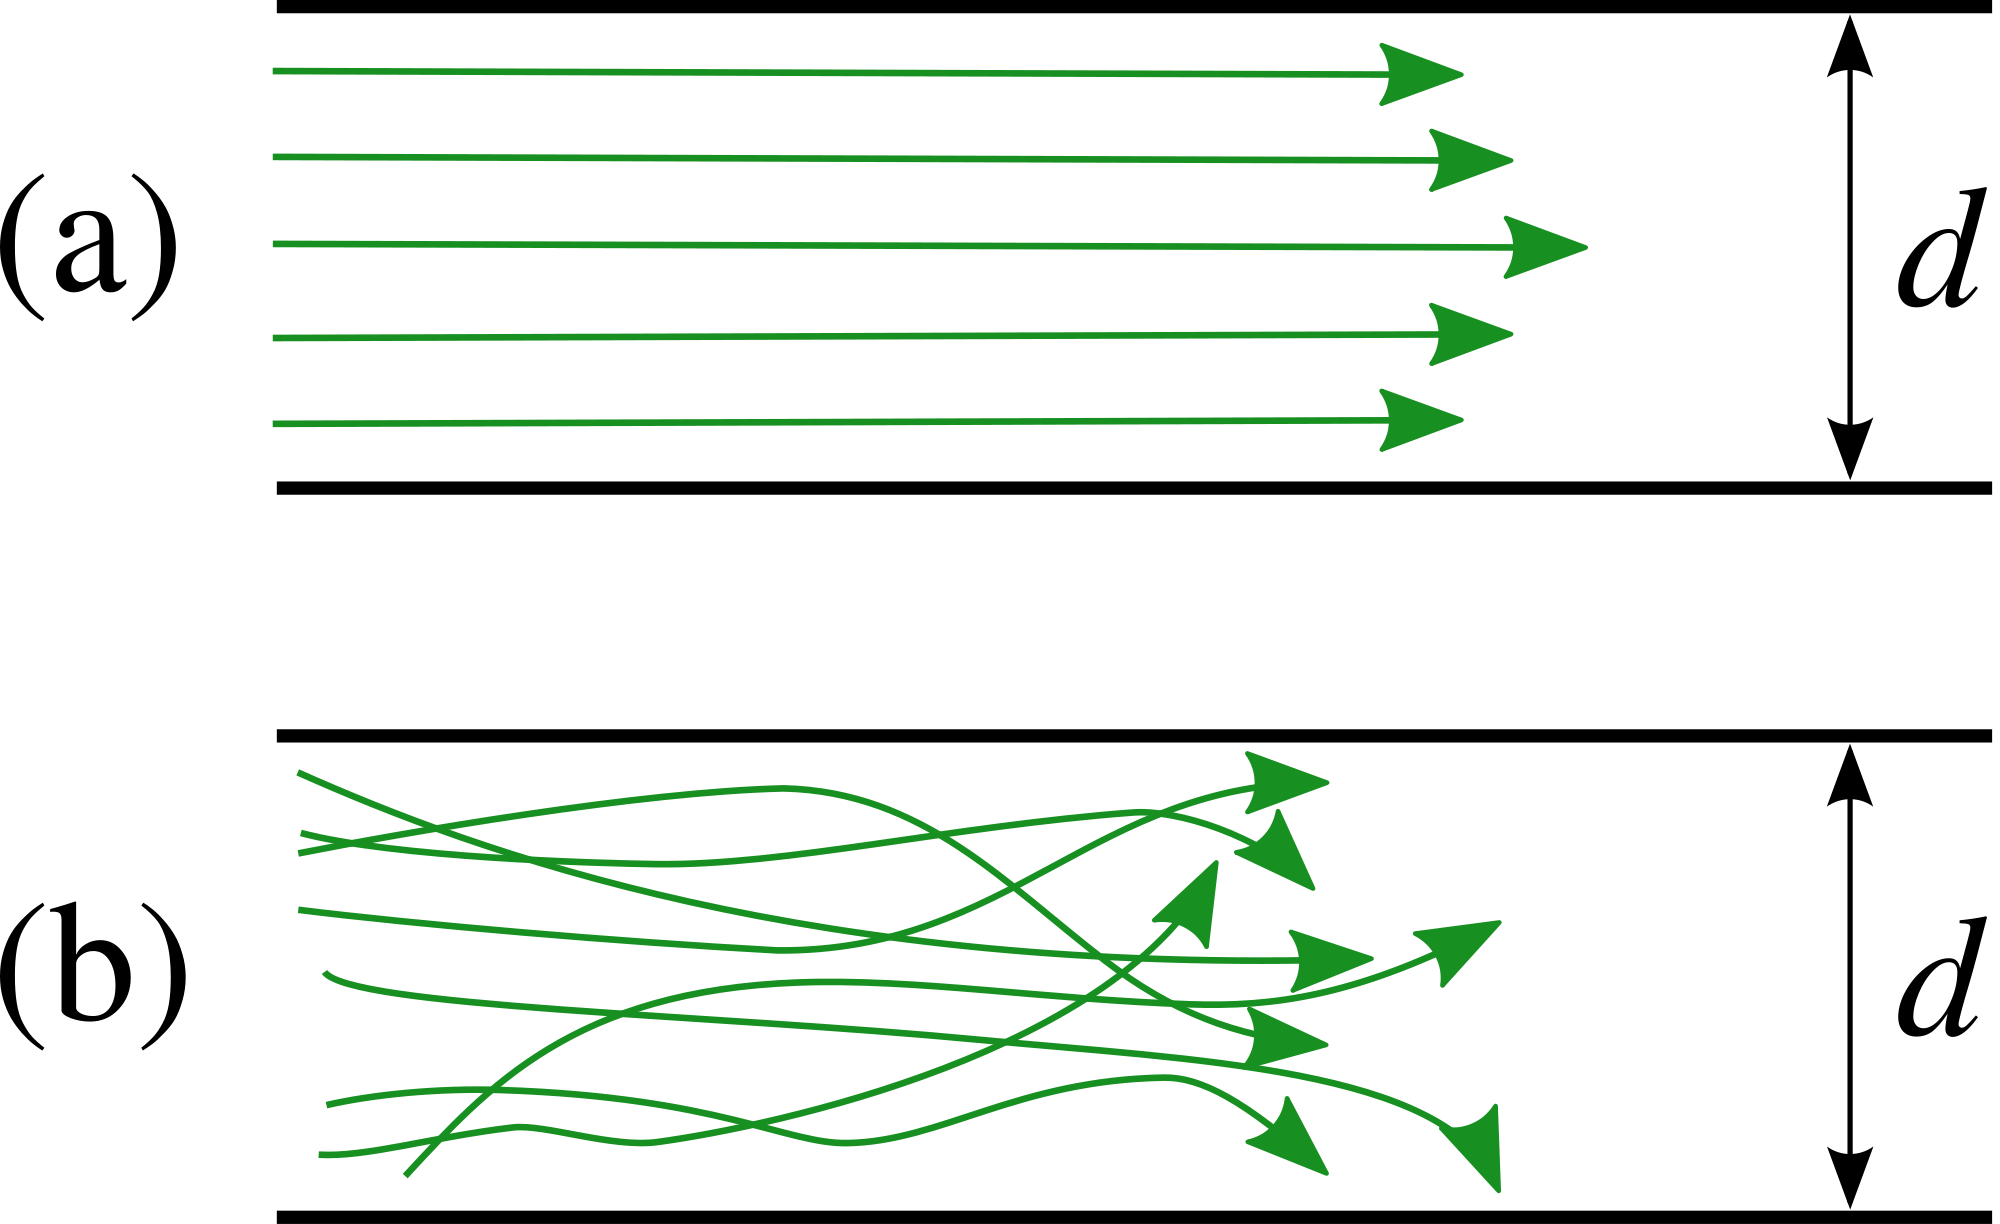 Figure 2: (a) Pattern of laminar flow as seen with heliox mixture, (b) Pattern of turbulent flow seen with a more viscous mixture such as atmospheric air alone.